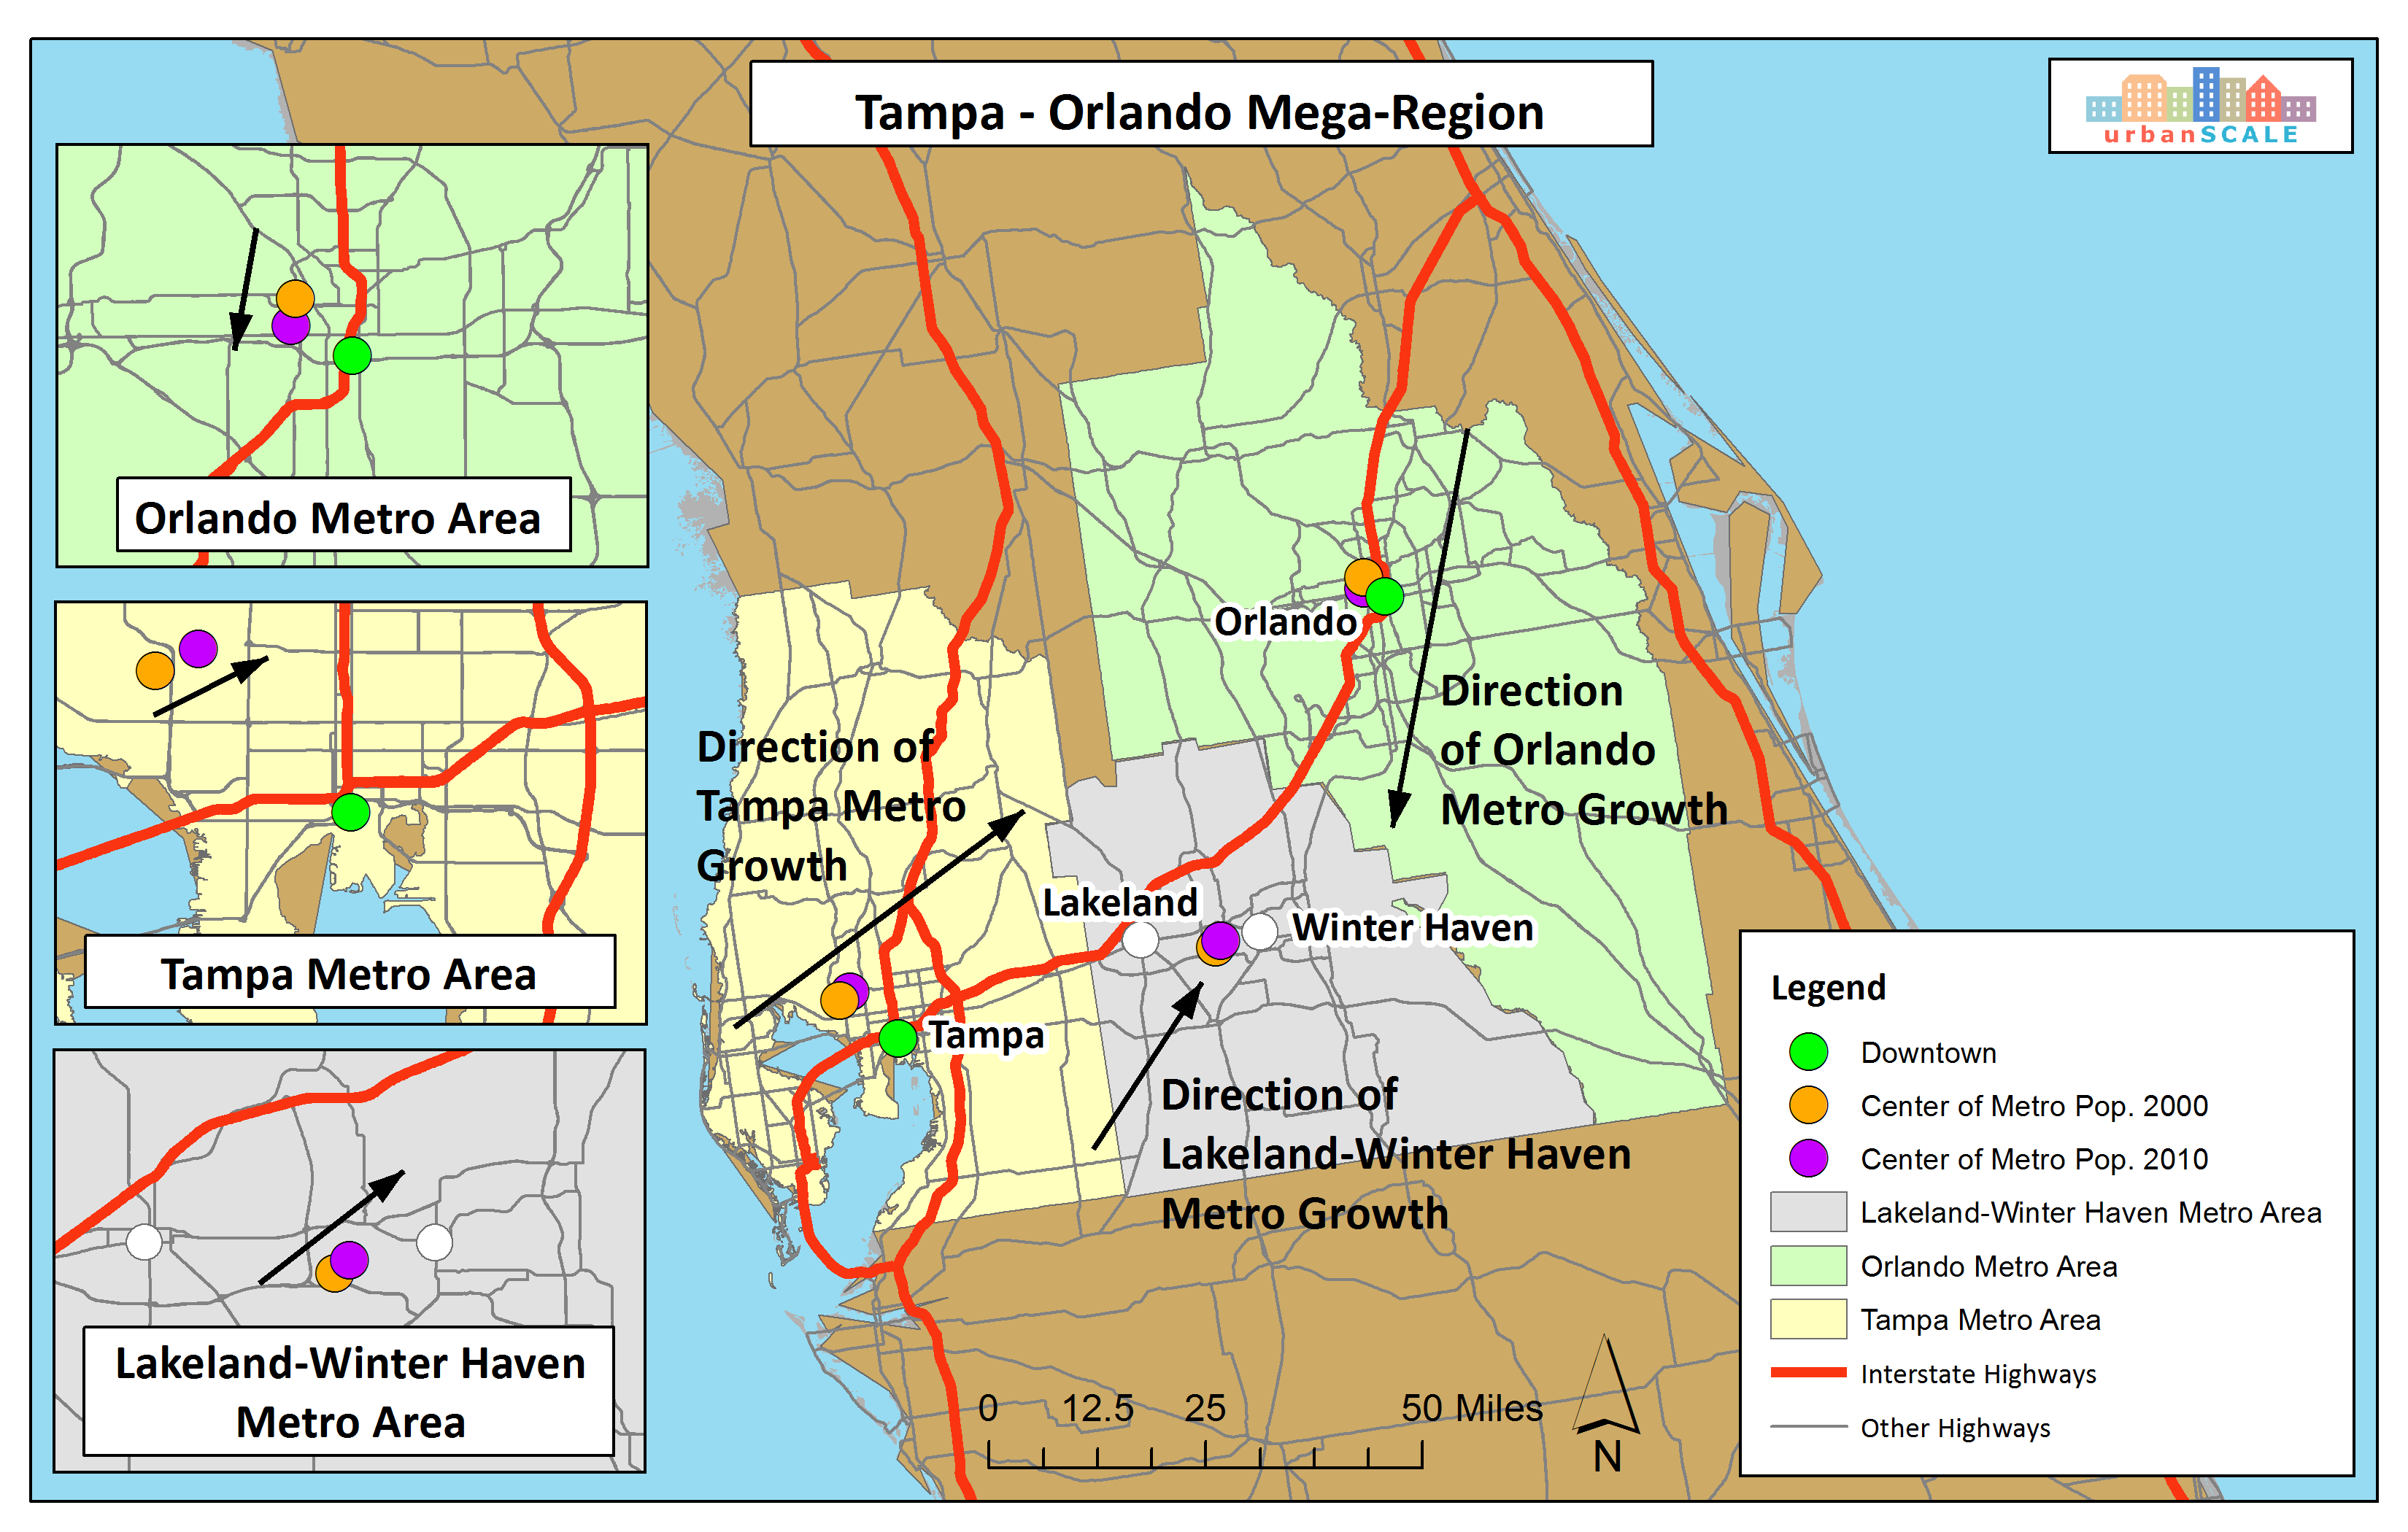 Tampa Cities Map And Travel Information | Download Free Tampa Cities Map - Tampa Florida Map With Cities